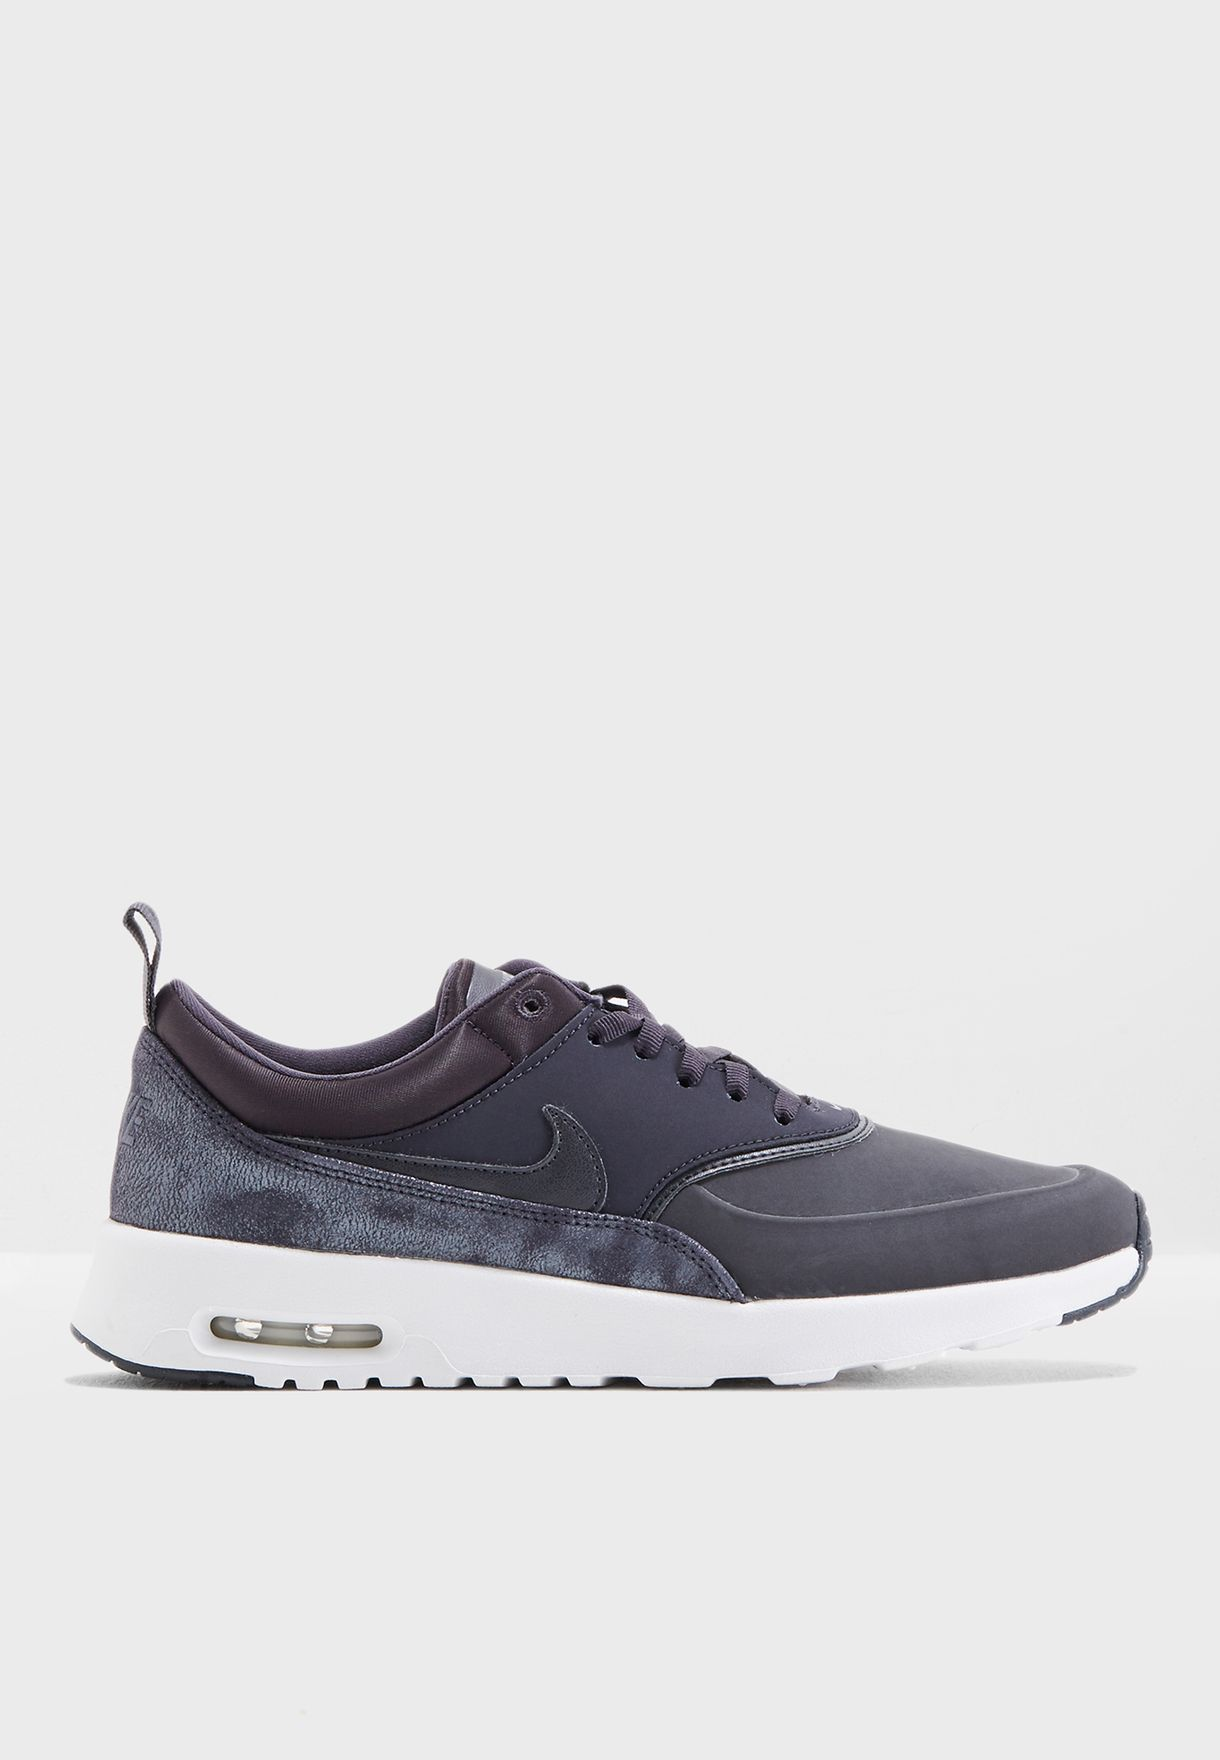 on sale ae0f4 3ebc5 Shop Nike black Air Max Thea PRM 616723-027 for Women in Saudi ...